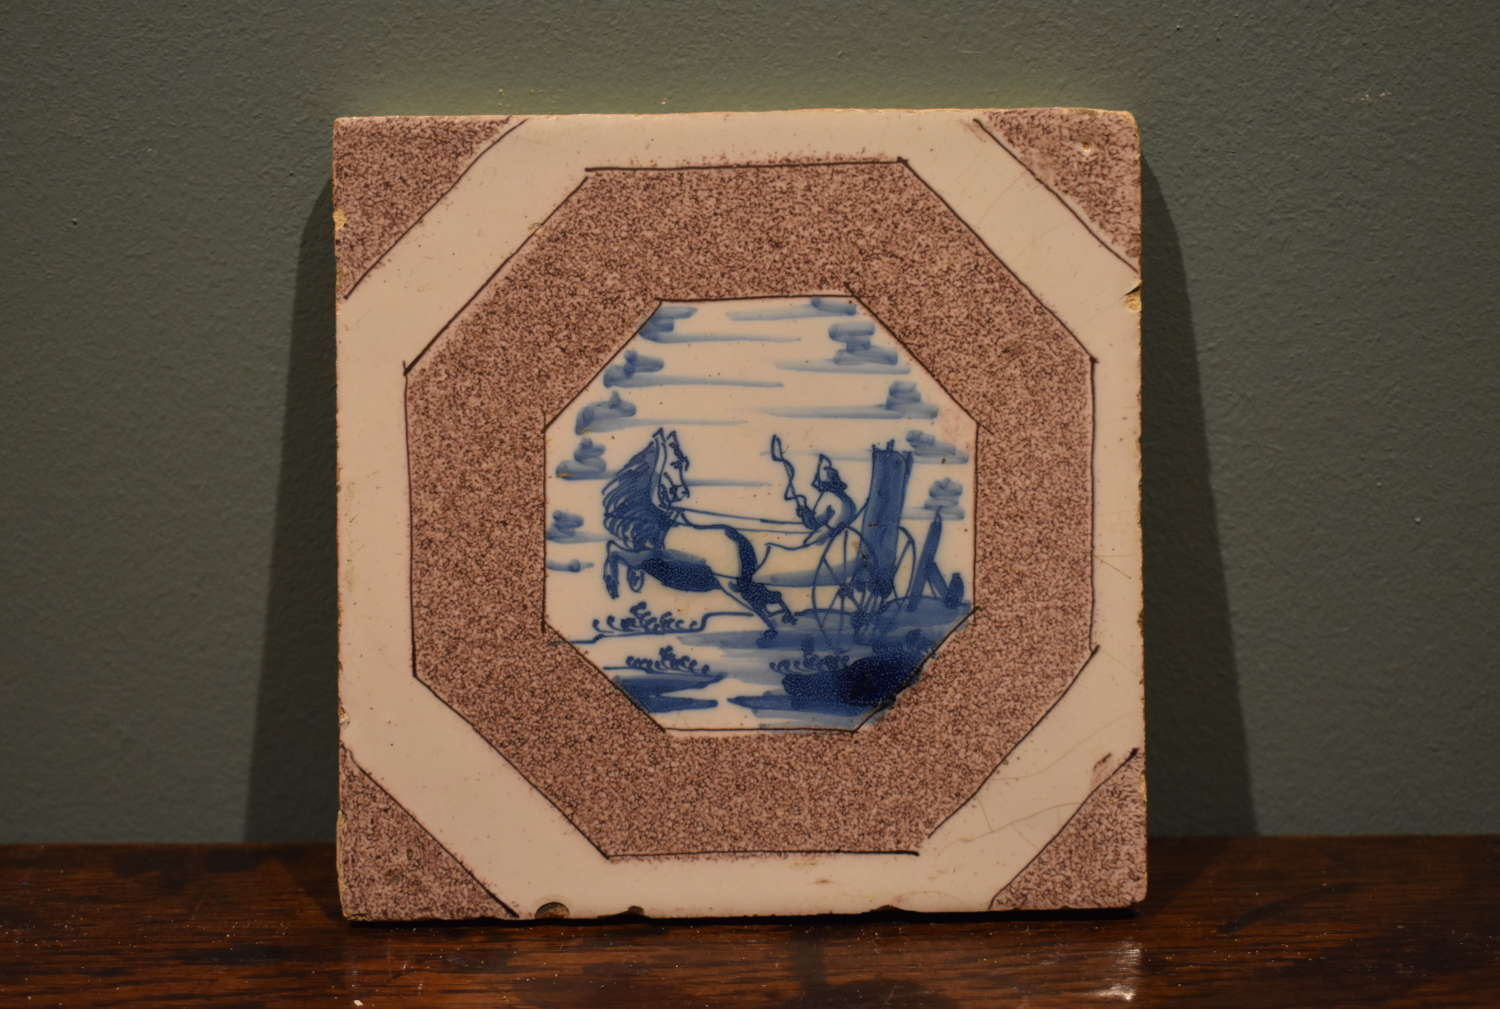 Rare, Mid 18th c. Dutch Delft tile